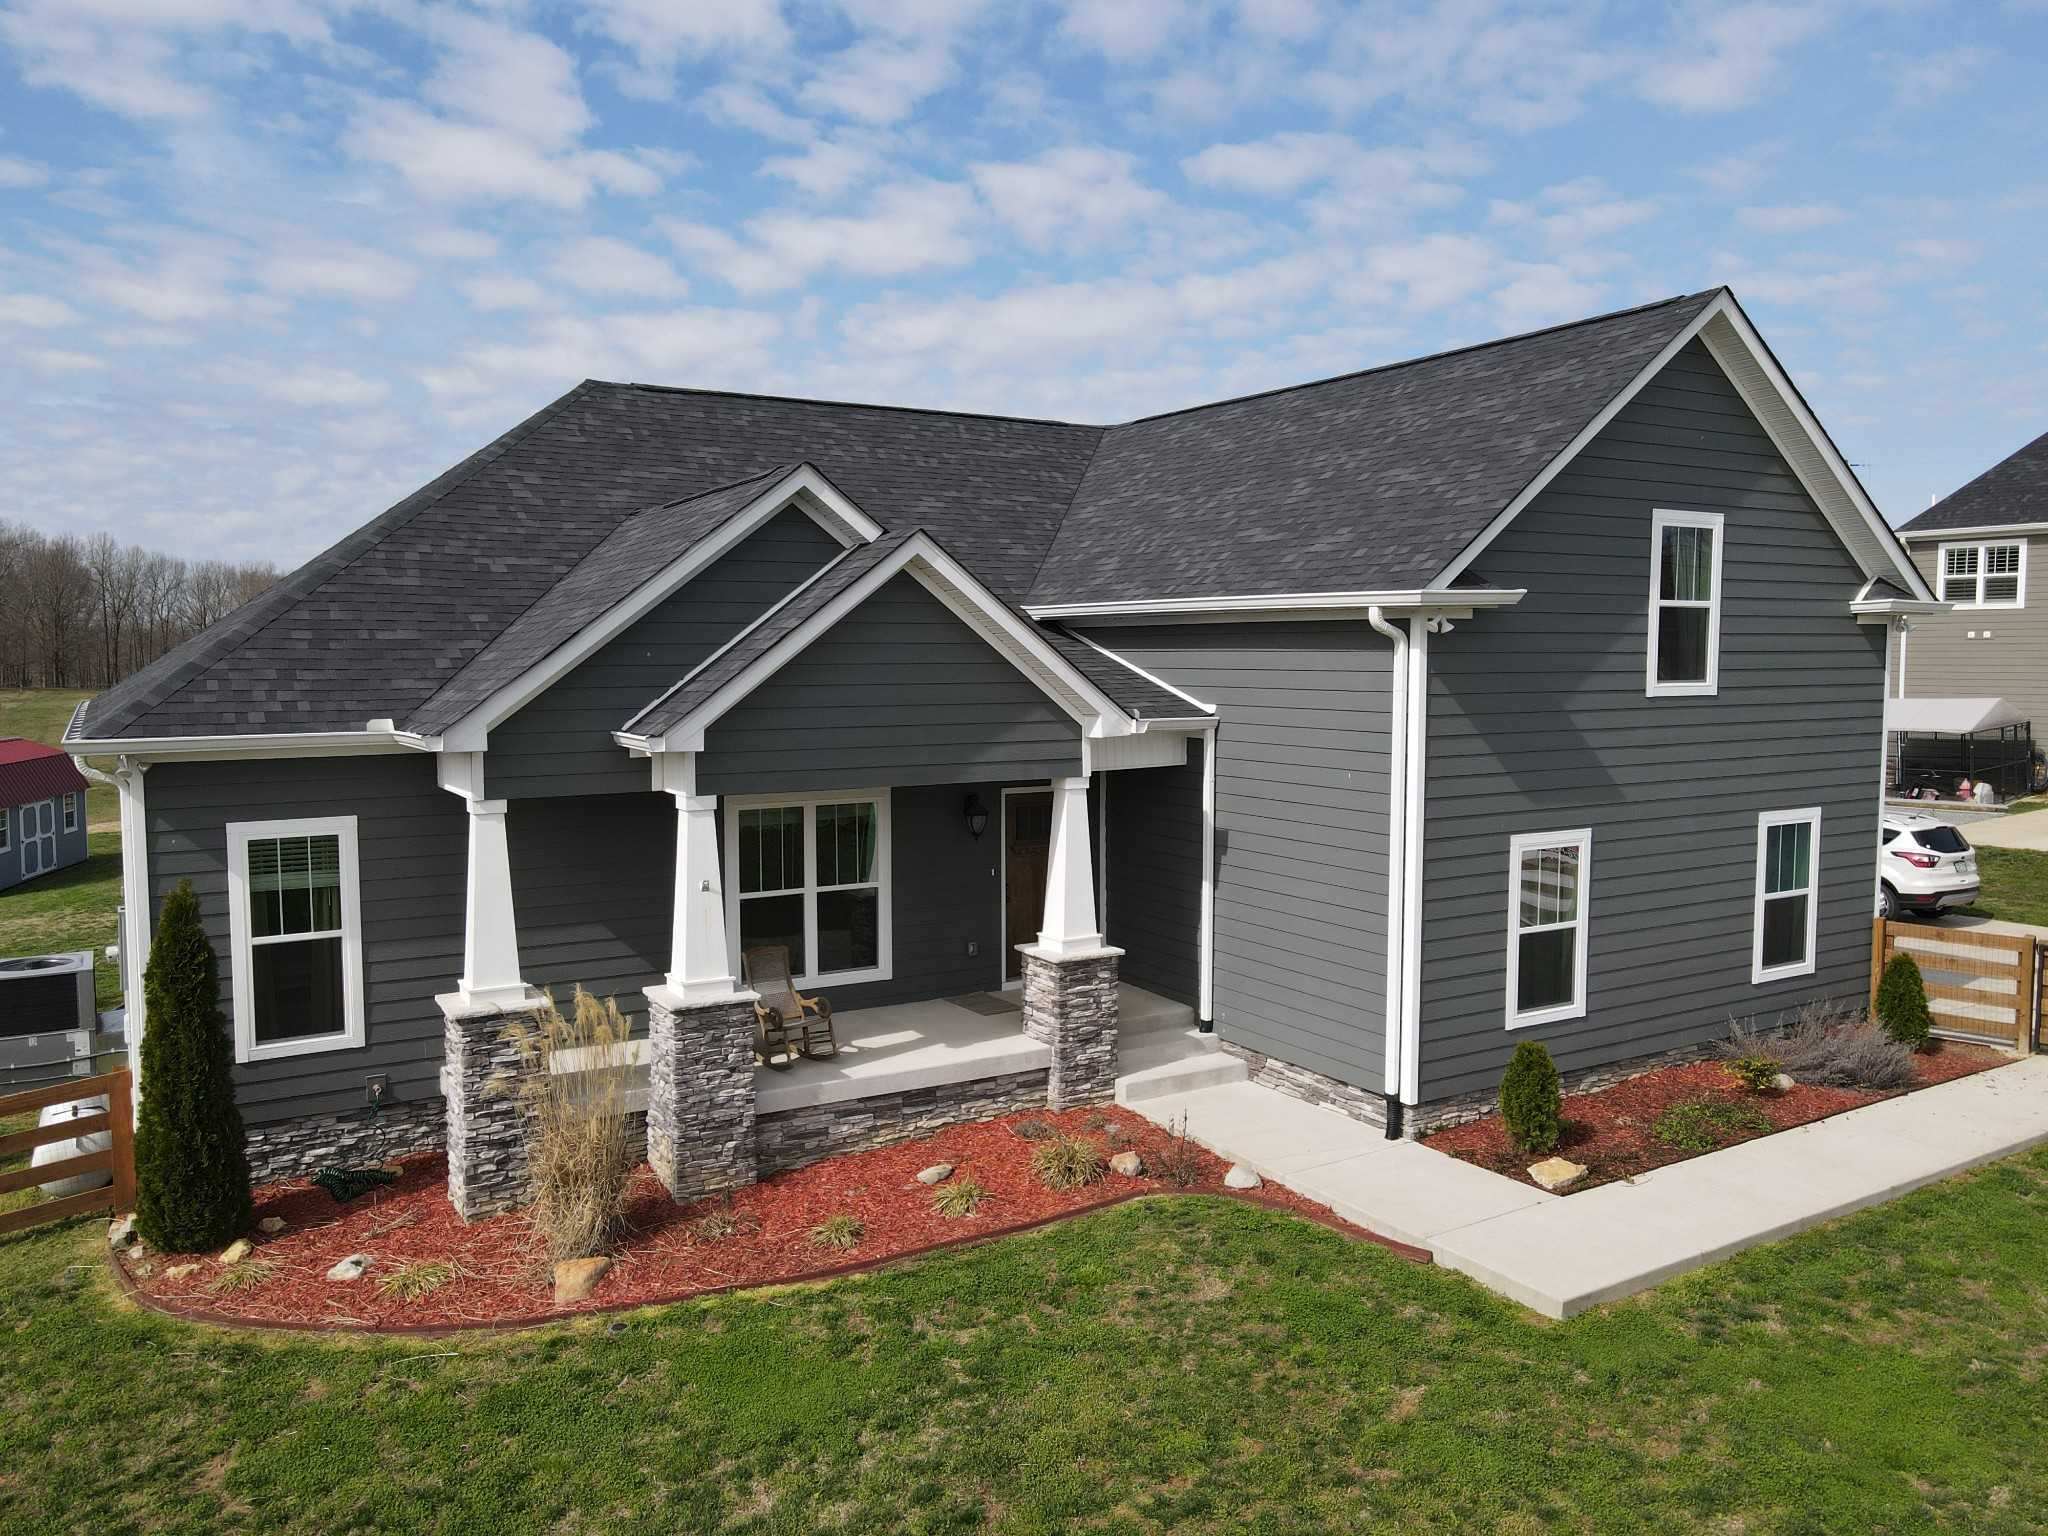 $499,900 - 3Br/2Ba -  for Sale in None, Goodlettsville